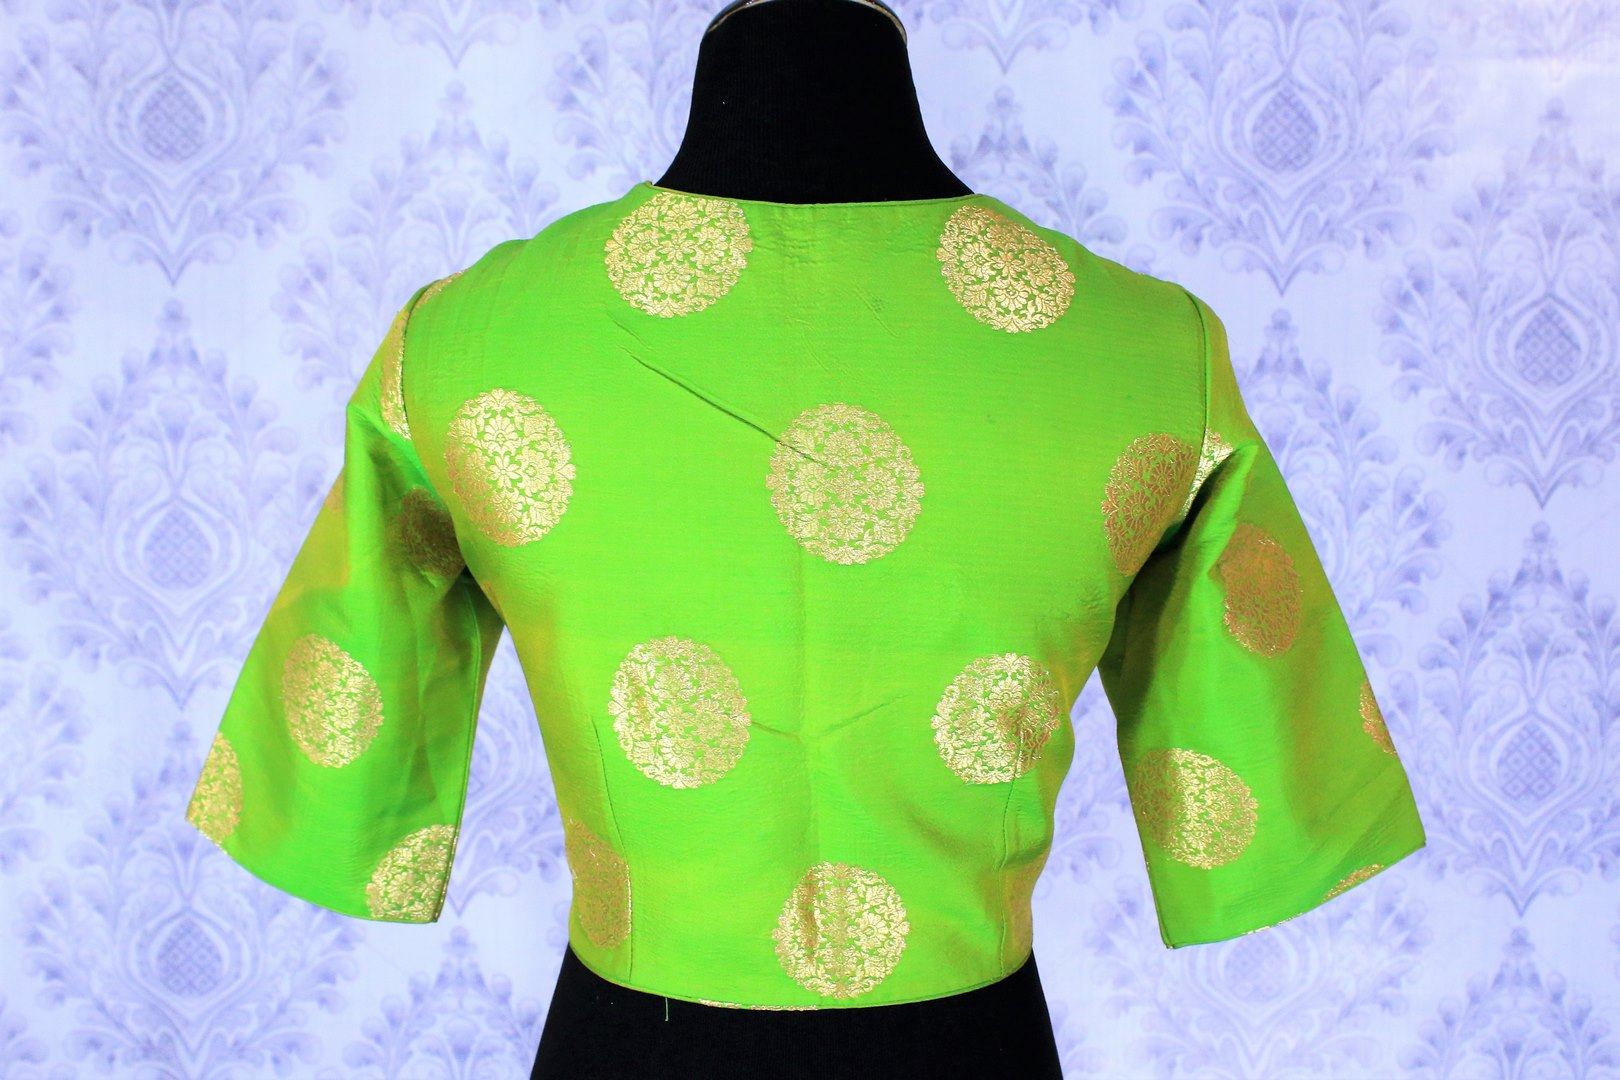 Lift your spirits as you doll up in this exclusively designed green with gold floral motifs silk saree blouse. This showstopper designer blouse will look strikingly beautiful with a black sari. Shop traditional blouses online or visit Pure Elegance store in USA. -back